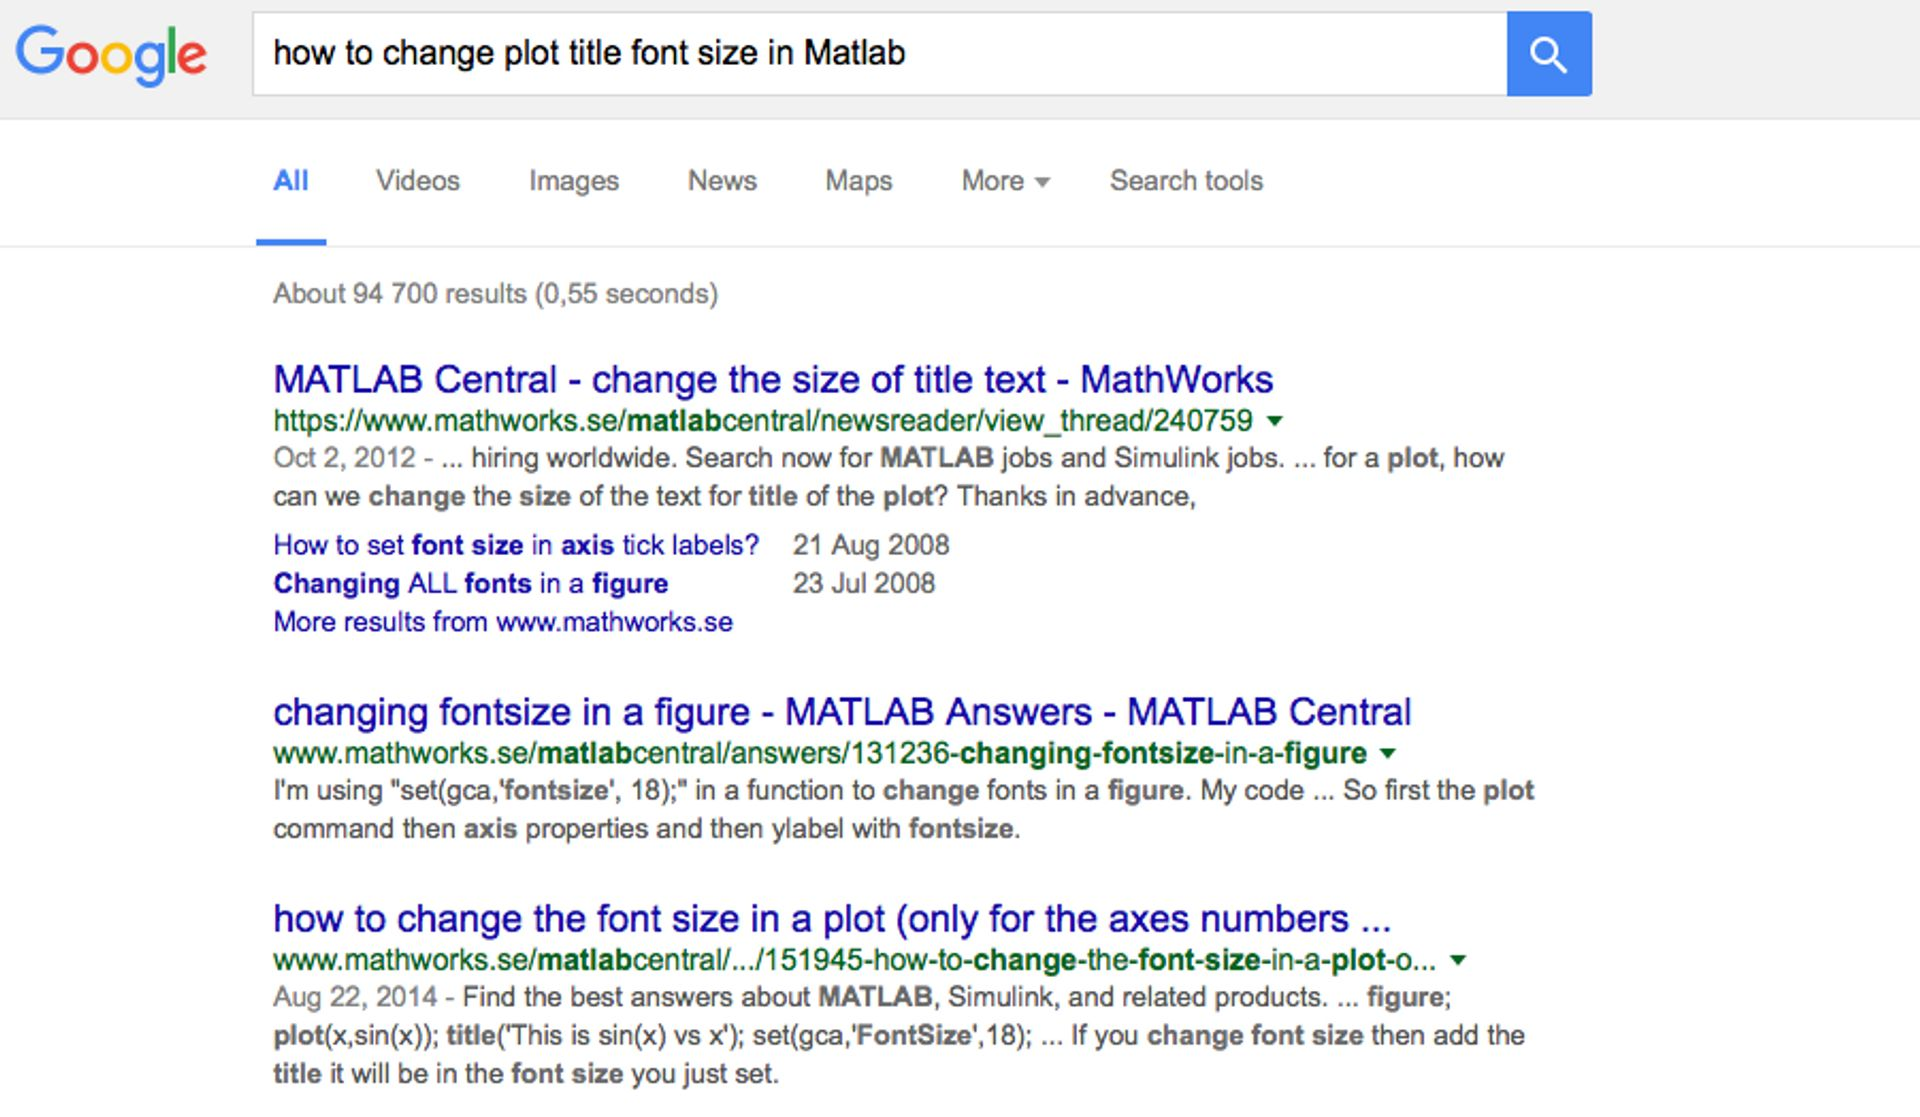 Screenshot of googling 'How to change plot title font size in Matlab'.